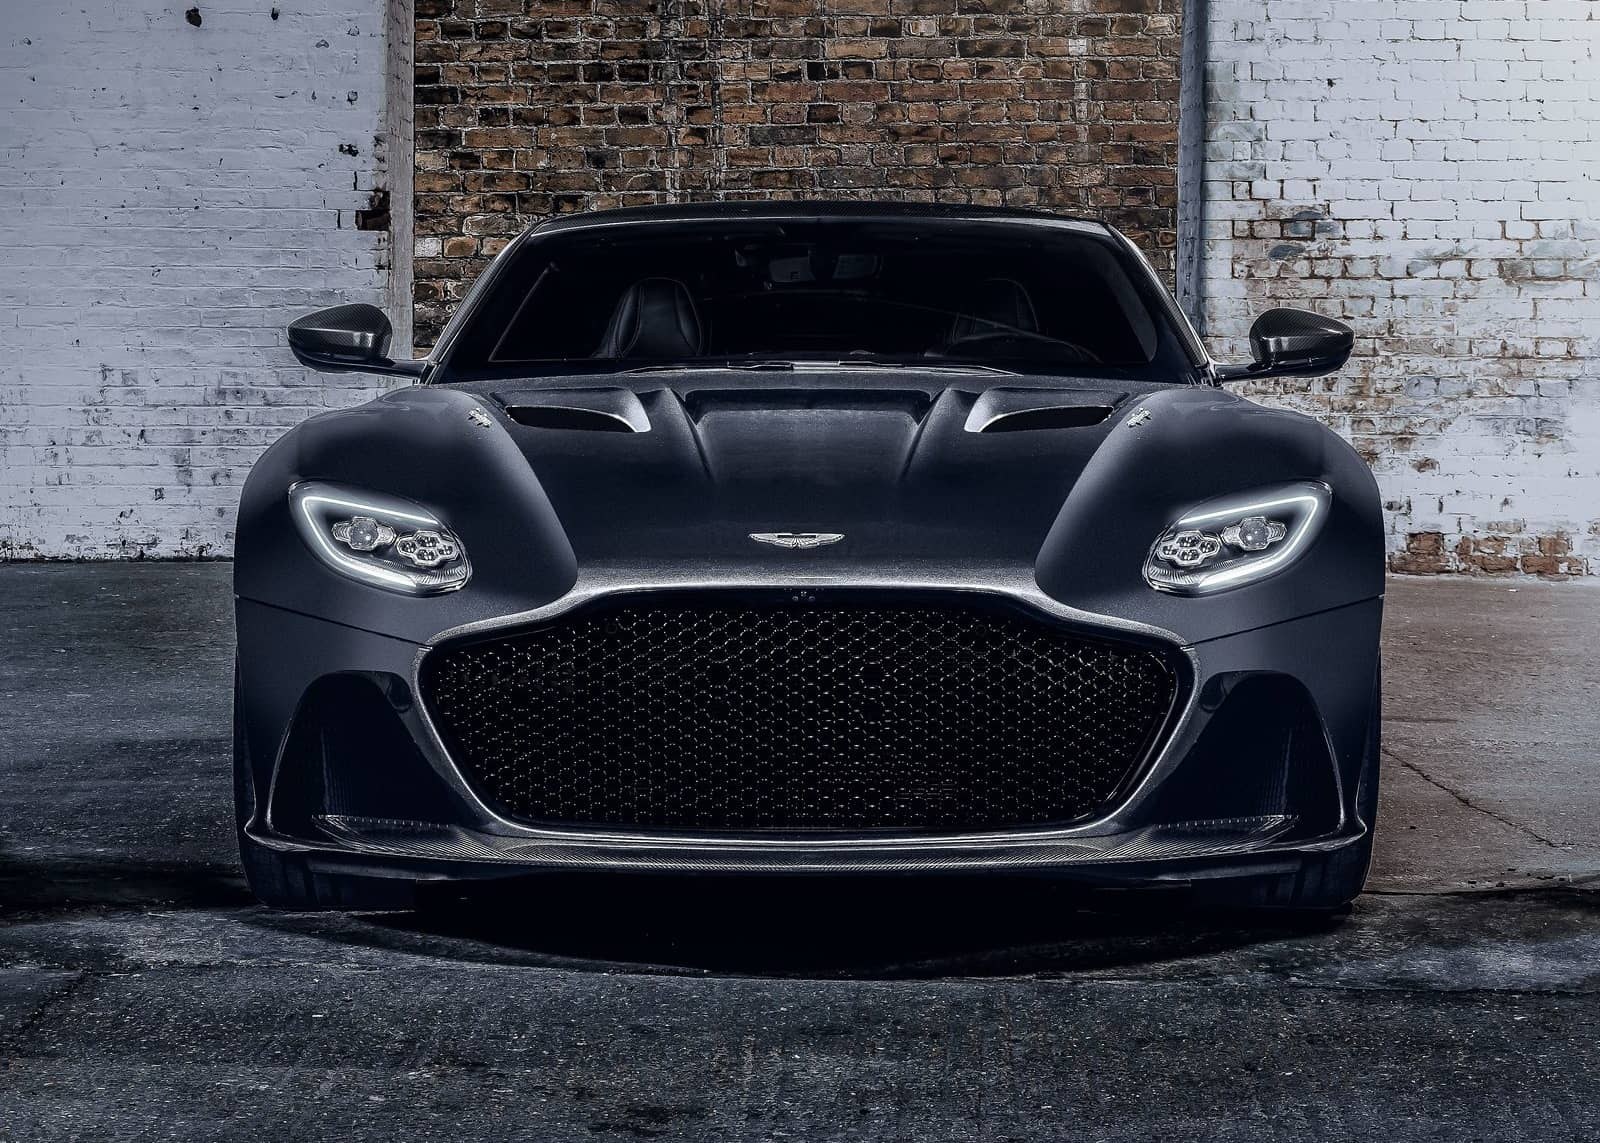 Aston Martin DBS Superleggera 007 Edition-7